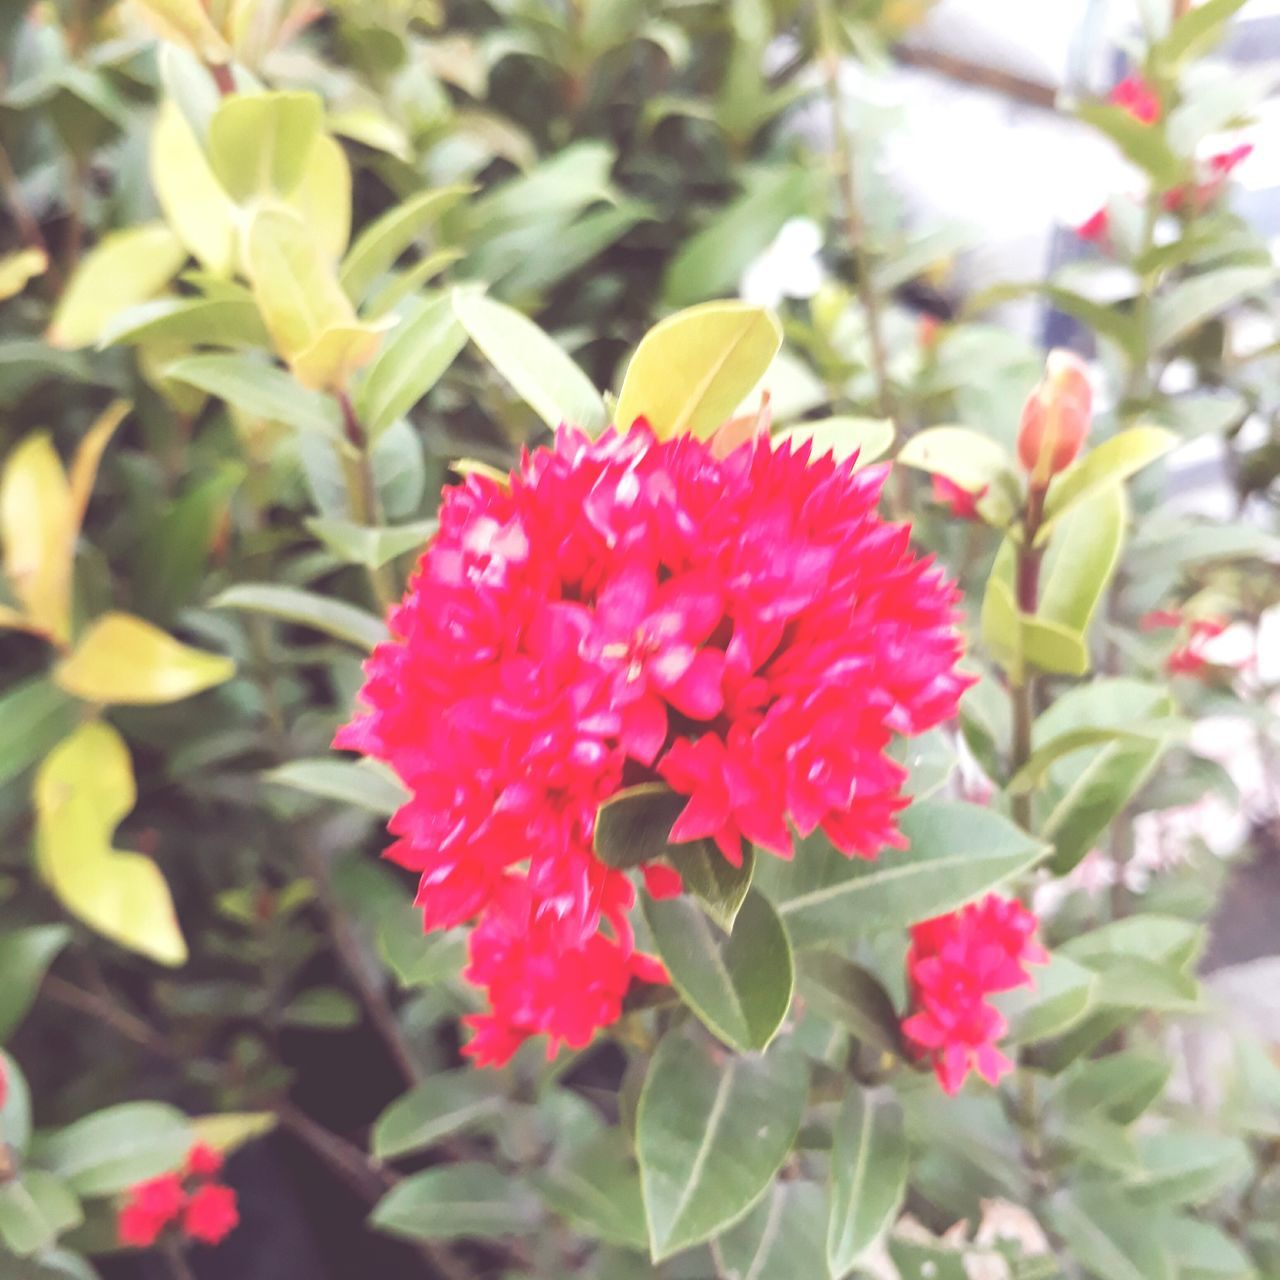 flower, growth, petal, beauty in nature, nature, fragility, plant, flower head, freshness, red, blooming, day, no people, outdoors, leaf, pink color, close-up, zinnia